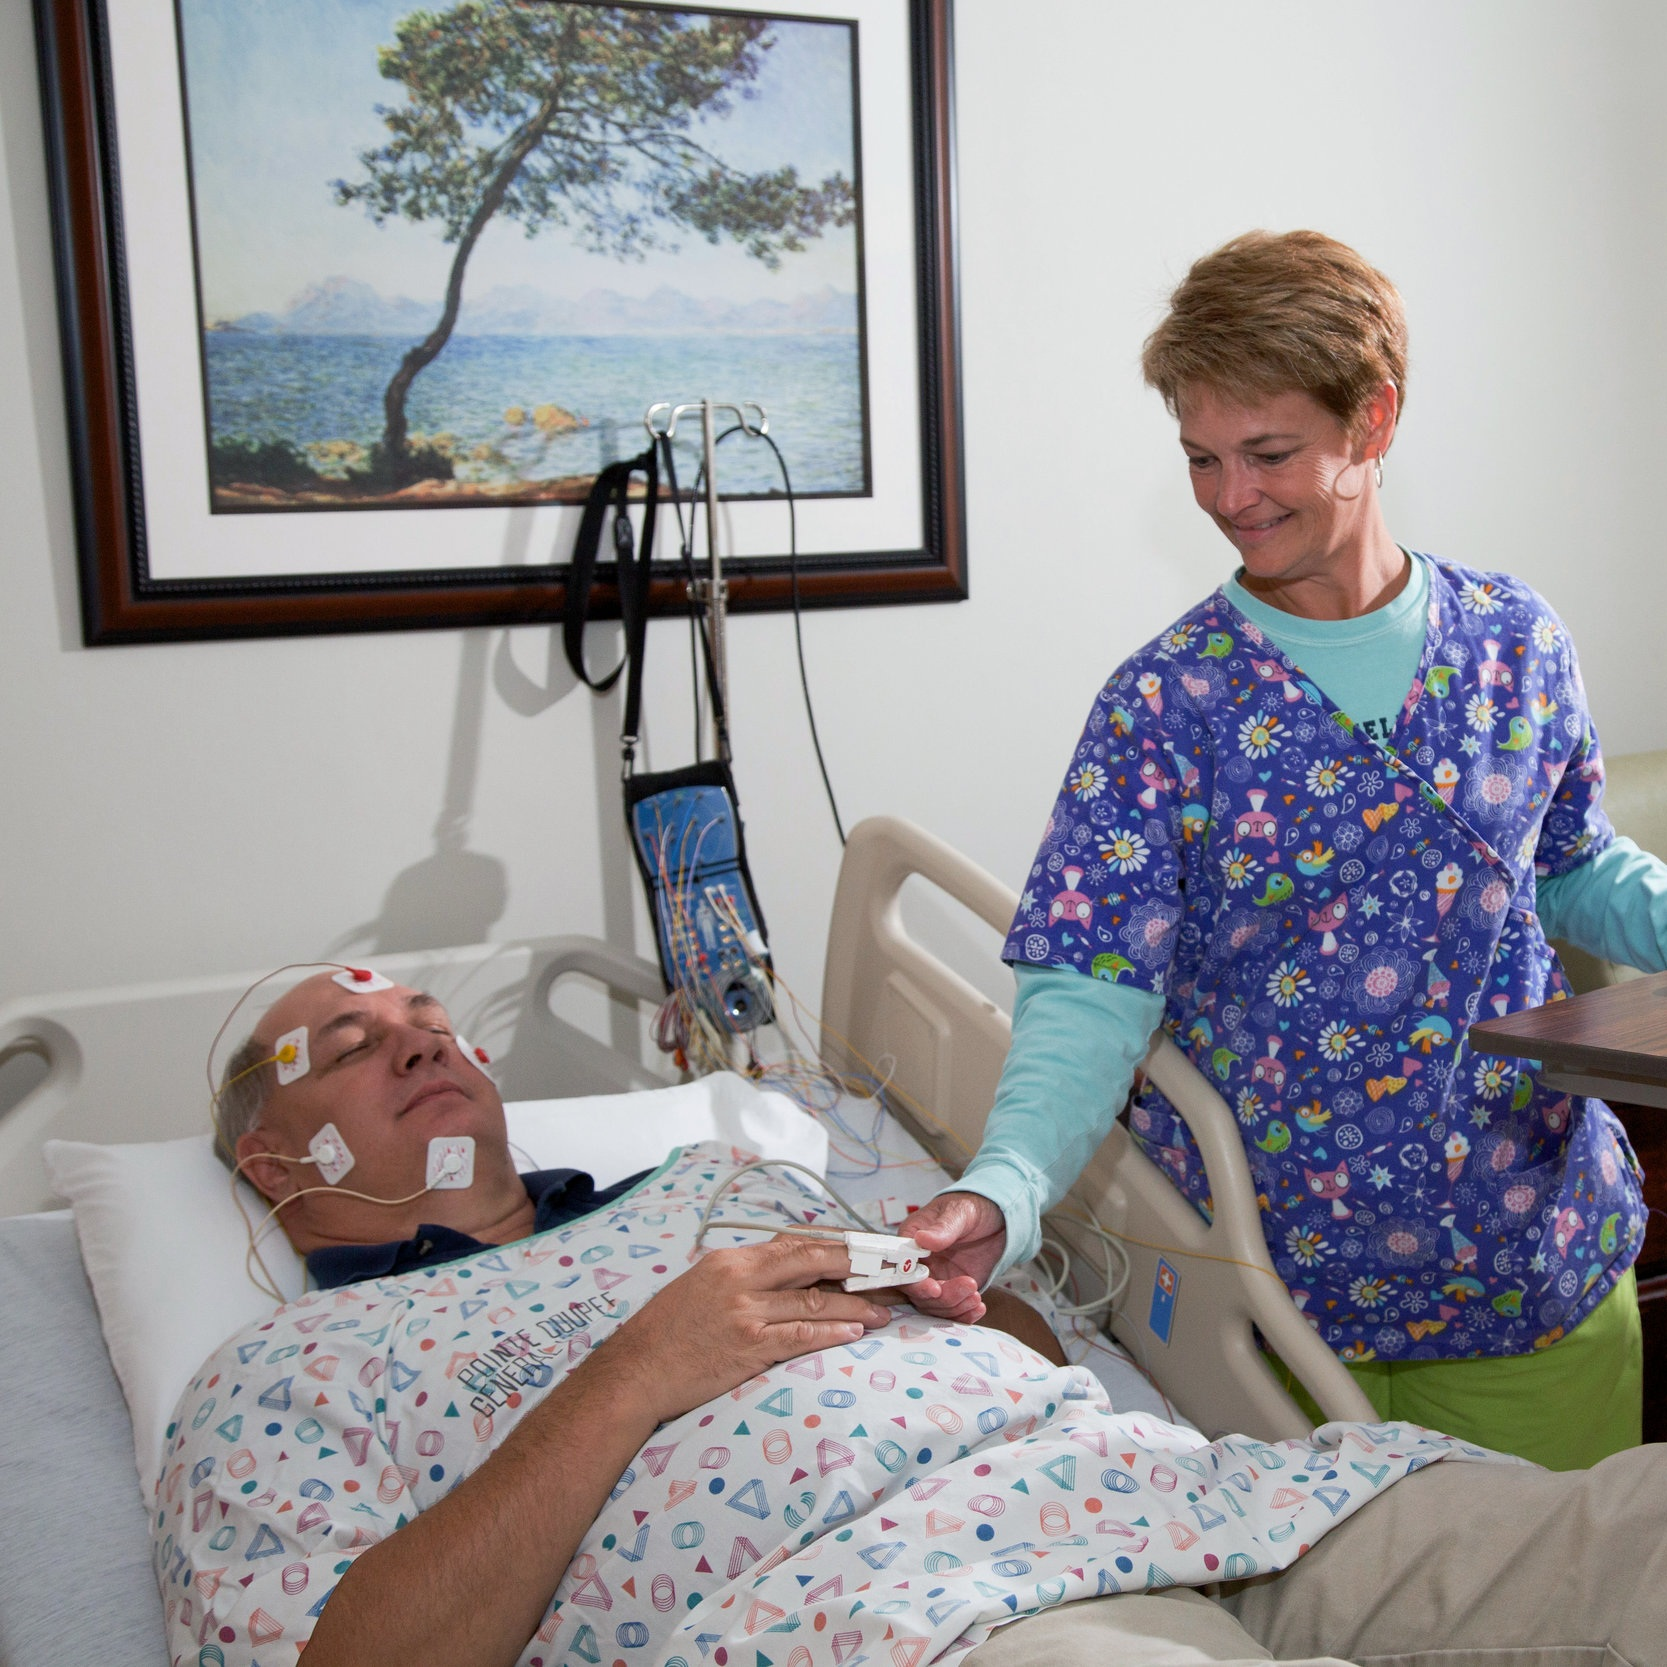 Sleep Disorders Center - Various issues in your airway can cause interruptions in breathing during sleep and can cause snoring, periods of breathlessness, and drowsiness. Our Sleep Disorder Center is equipped with state of the art systems to diagnosis and treat sleep apnea.